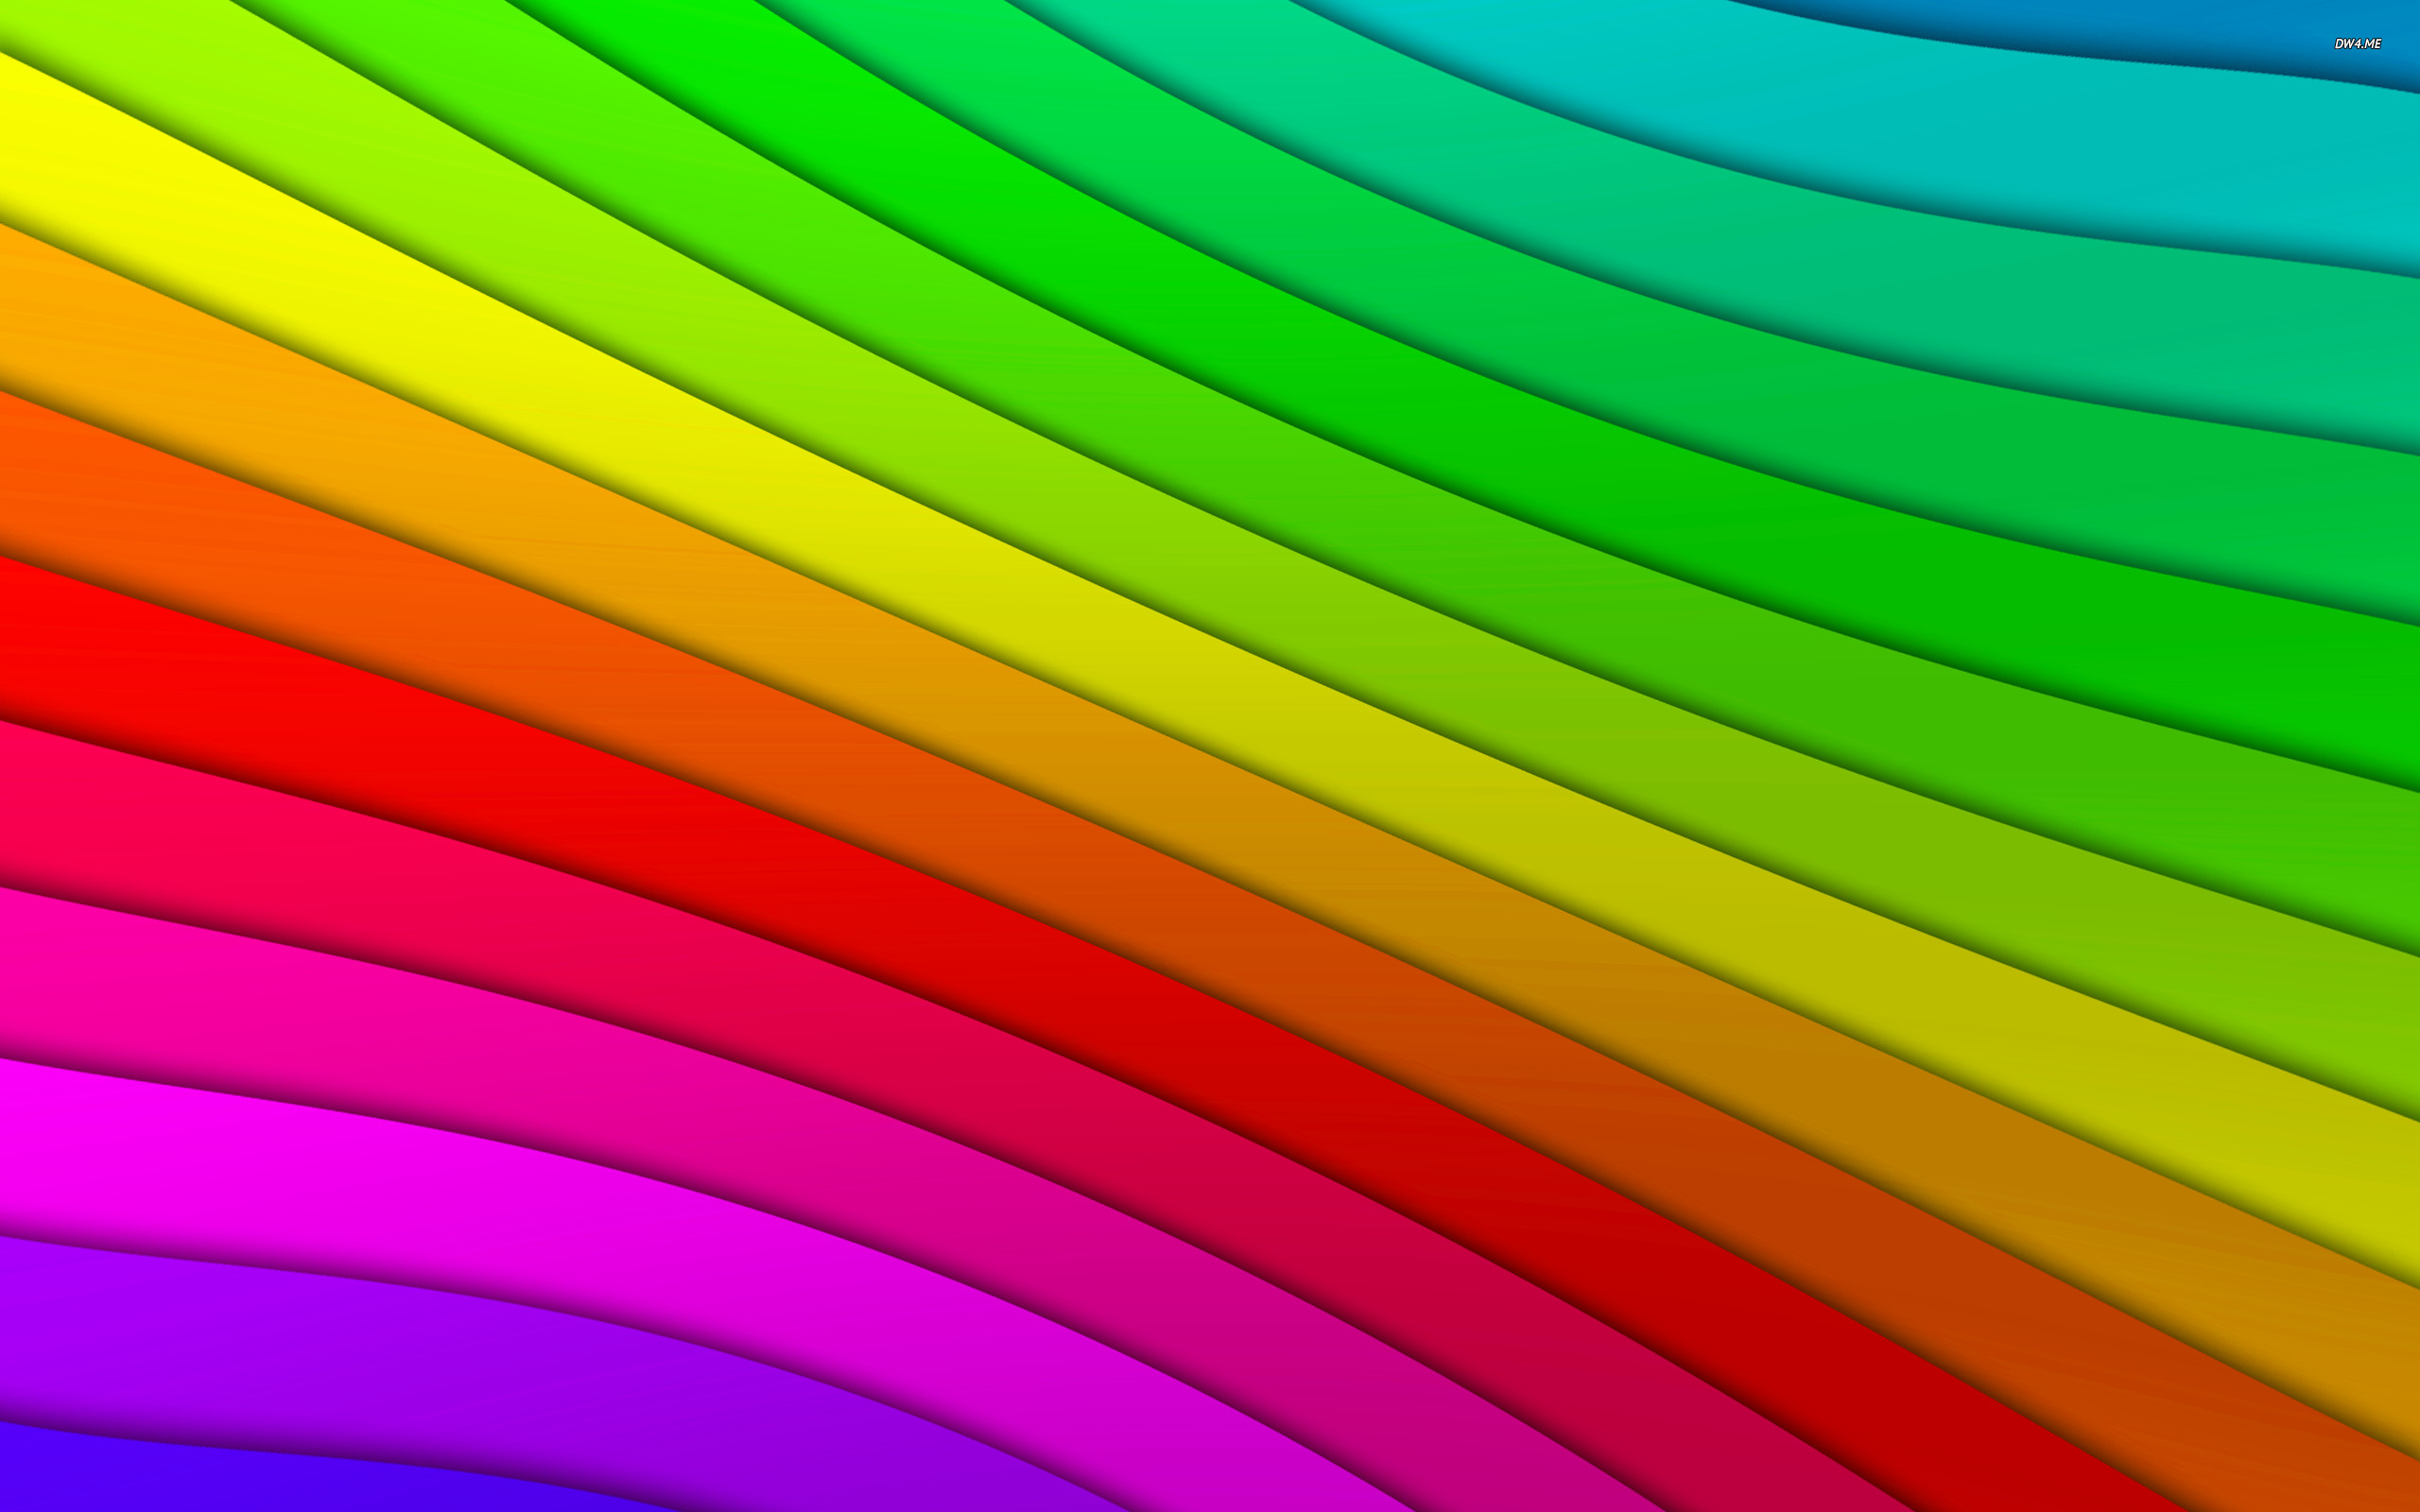 Colored curved lines wallpaper